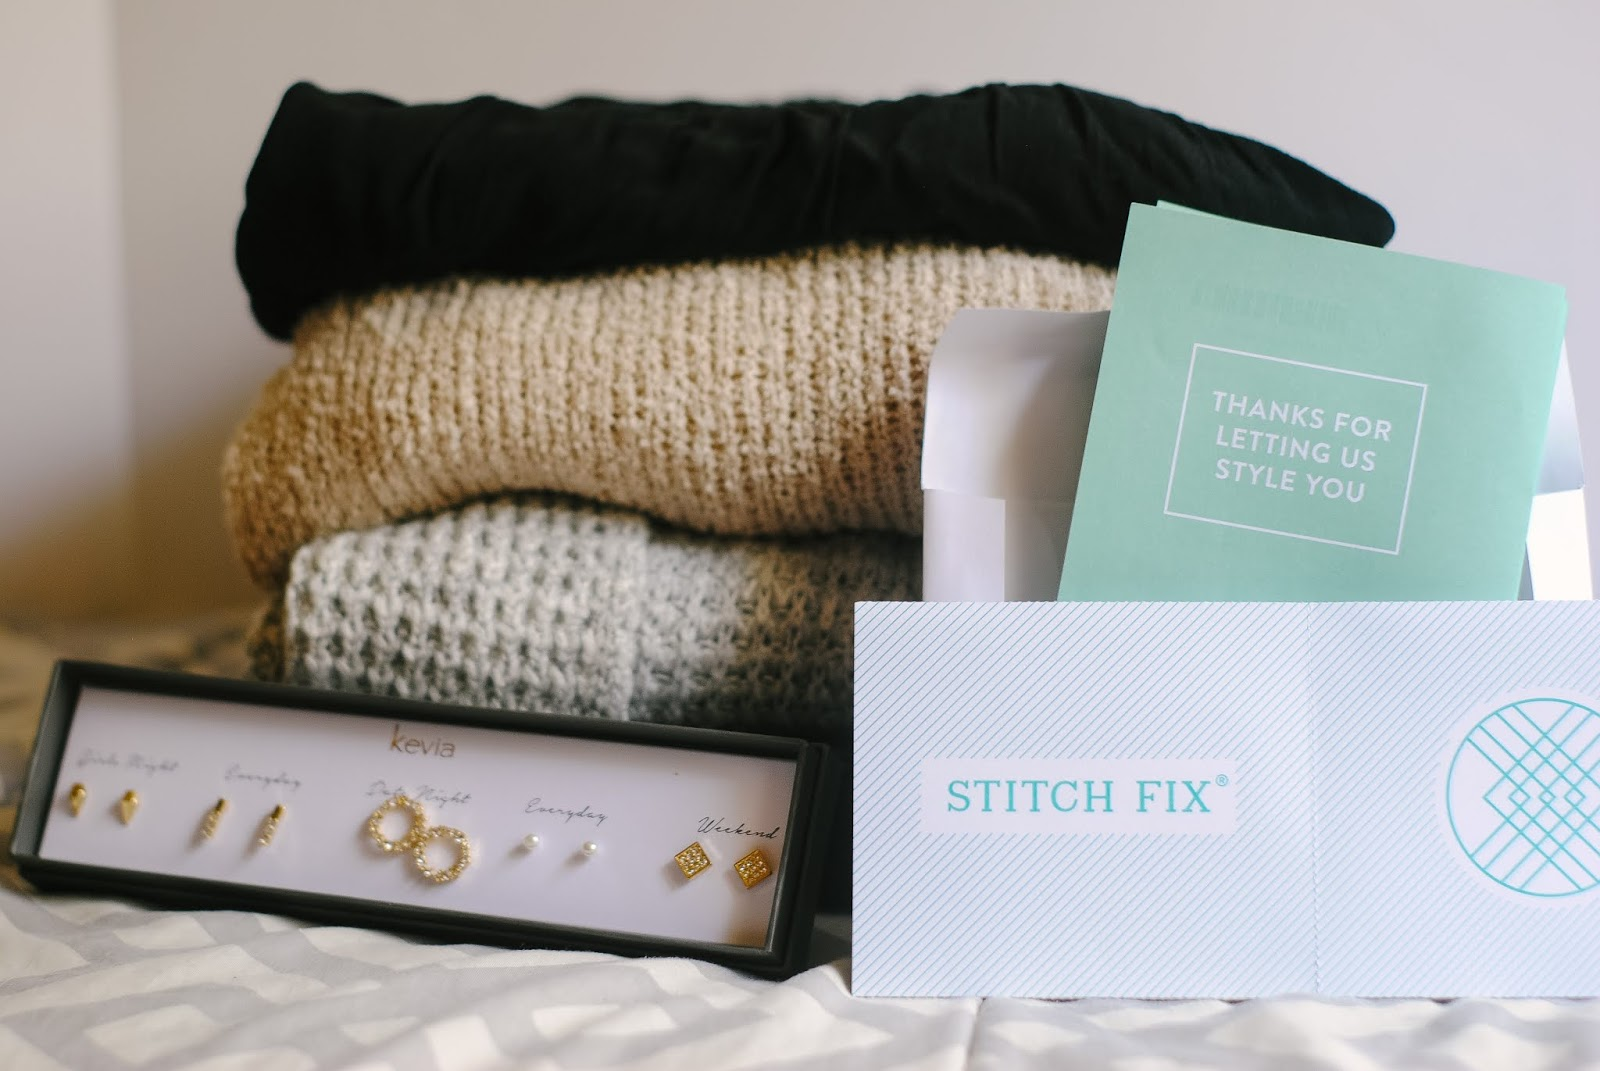 A couple years back, I used to review my Stitch Fix boxes on this blog (you can read all about my last 4 boxes here). The first and third boxes were amazing, but I didn't really like anything from the second or fourth, which caused me to cancel my subscription. I decided restart my subscription to Stitch Fix a few months ago so keep reading to learn why! #stitchfix #stitchfixreview